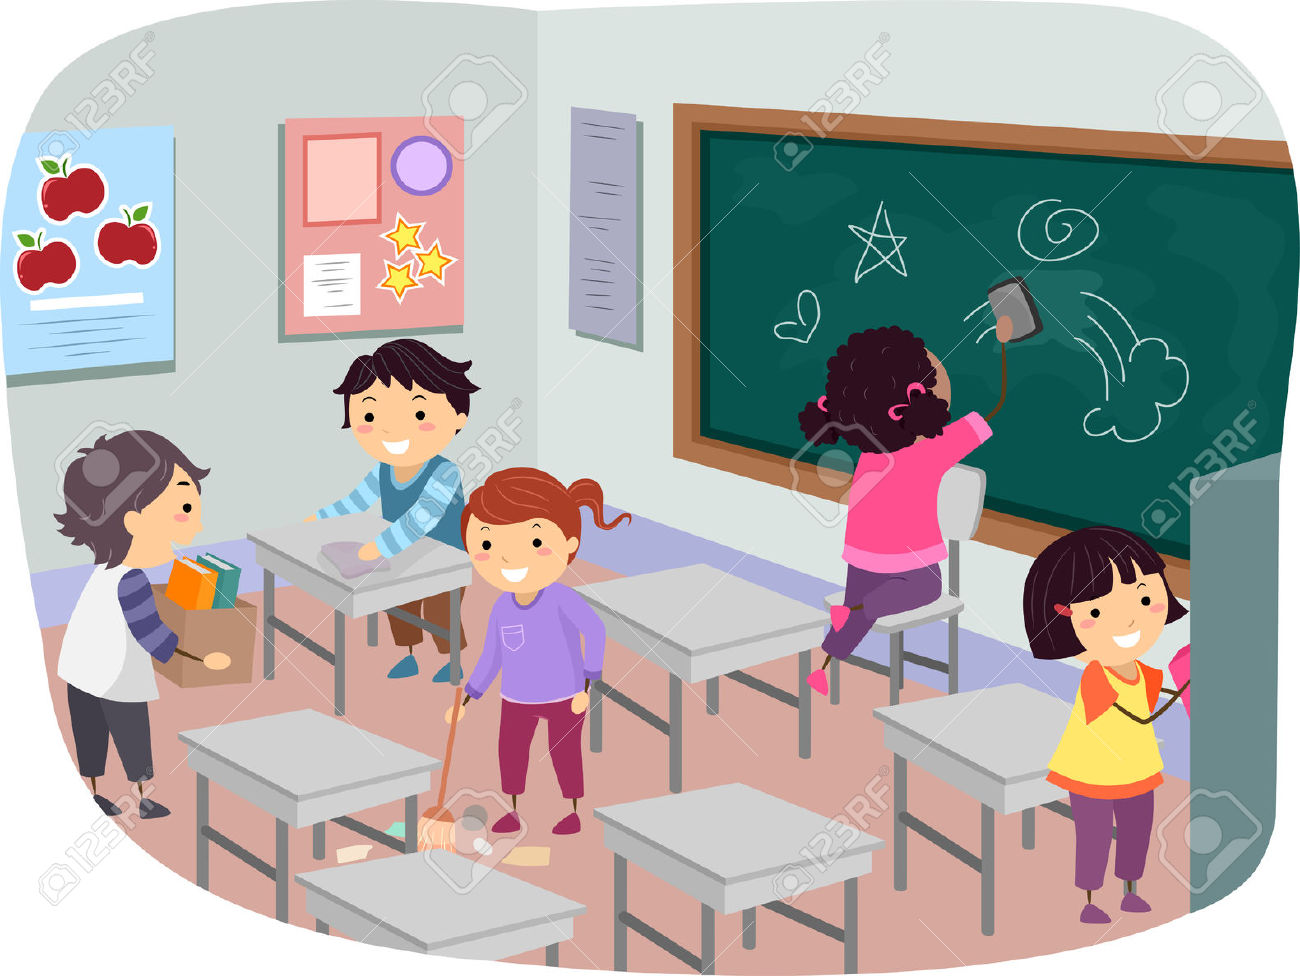 Housekeeping clipart classroom. Children cleaning station